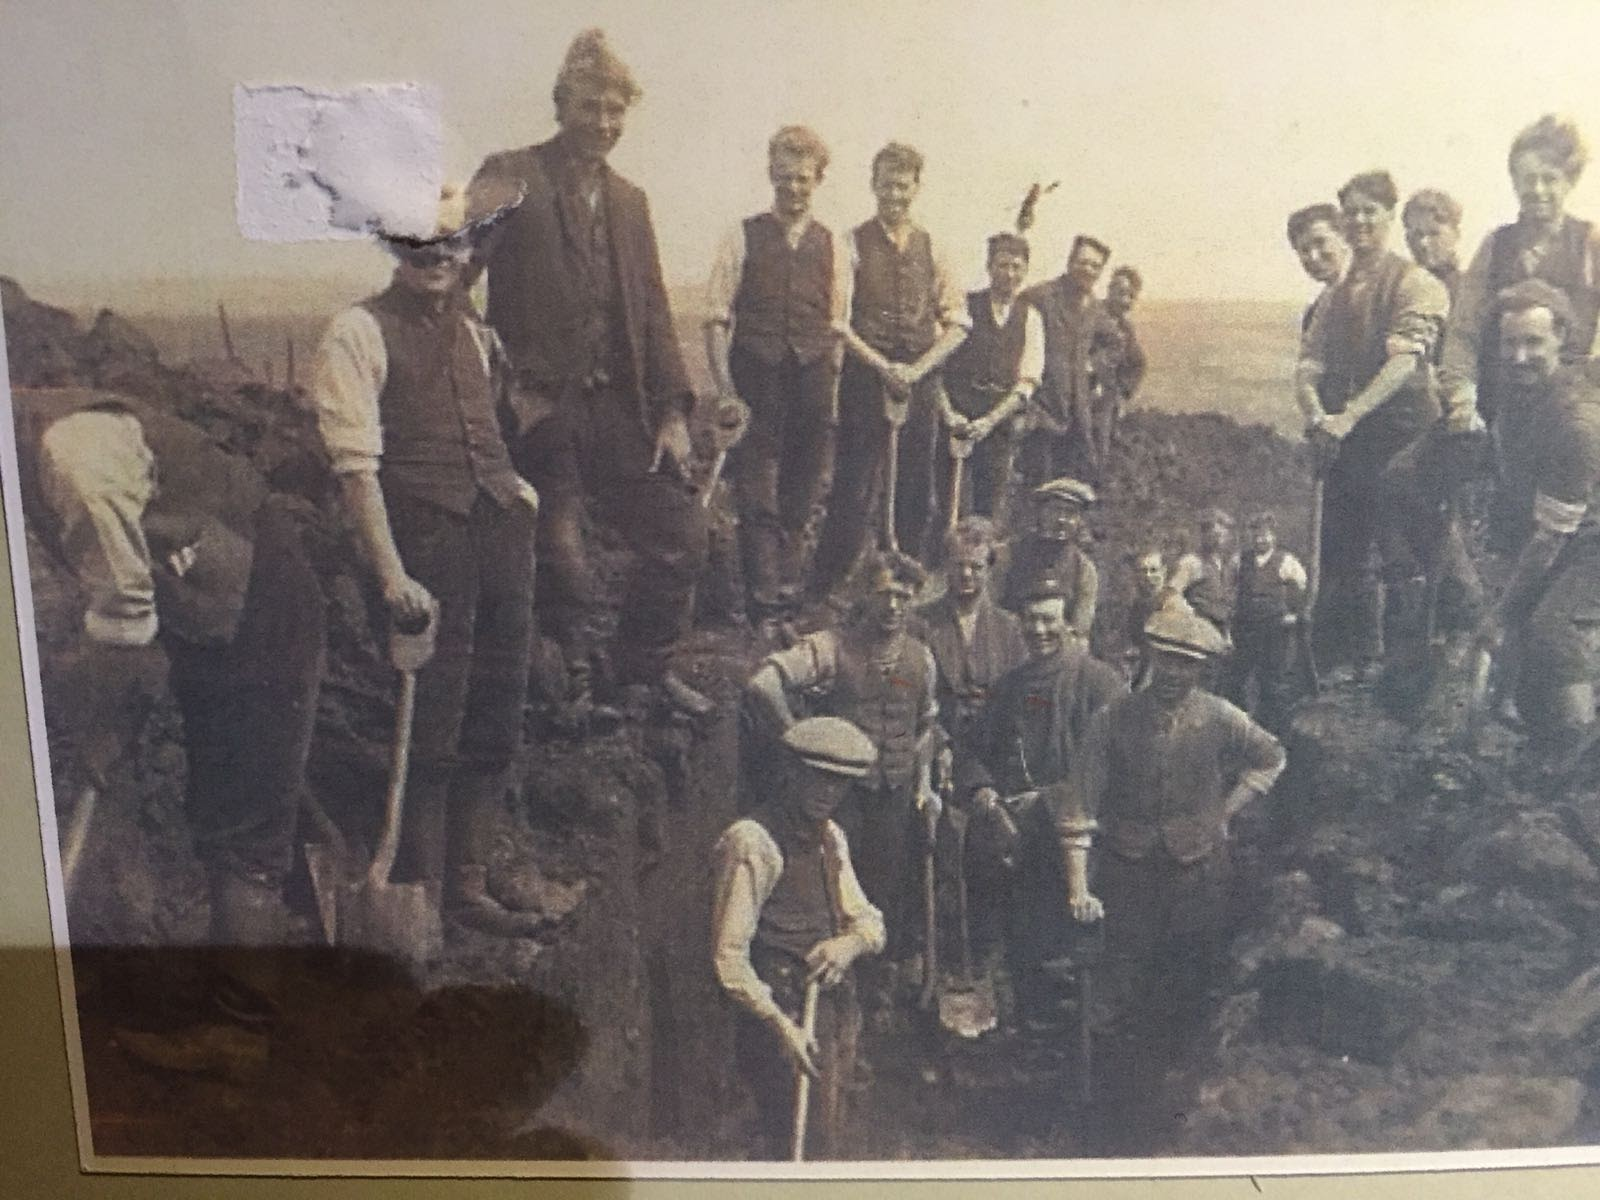 Conscientious Objectors on Dartmoor